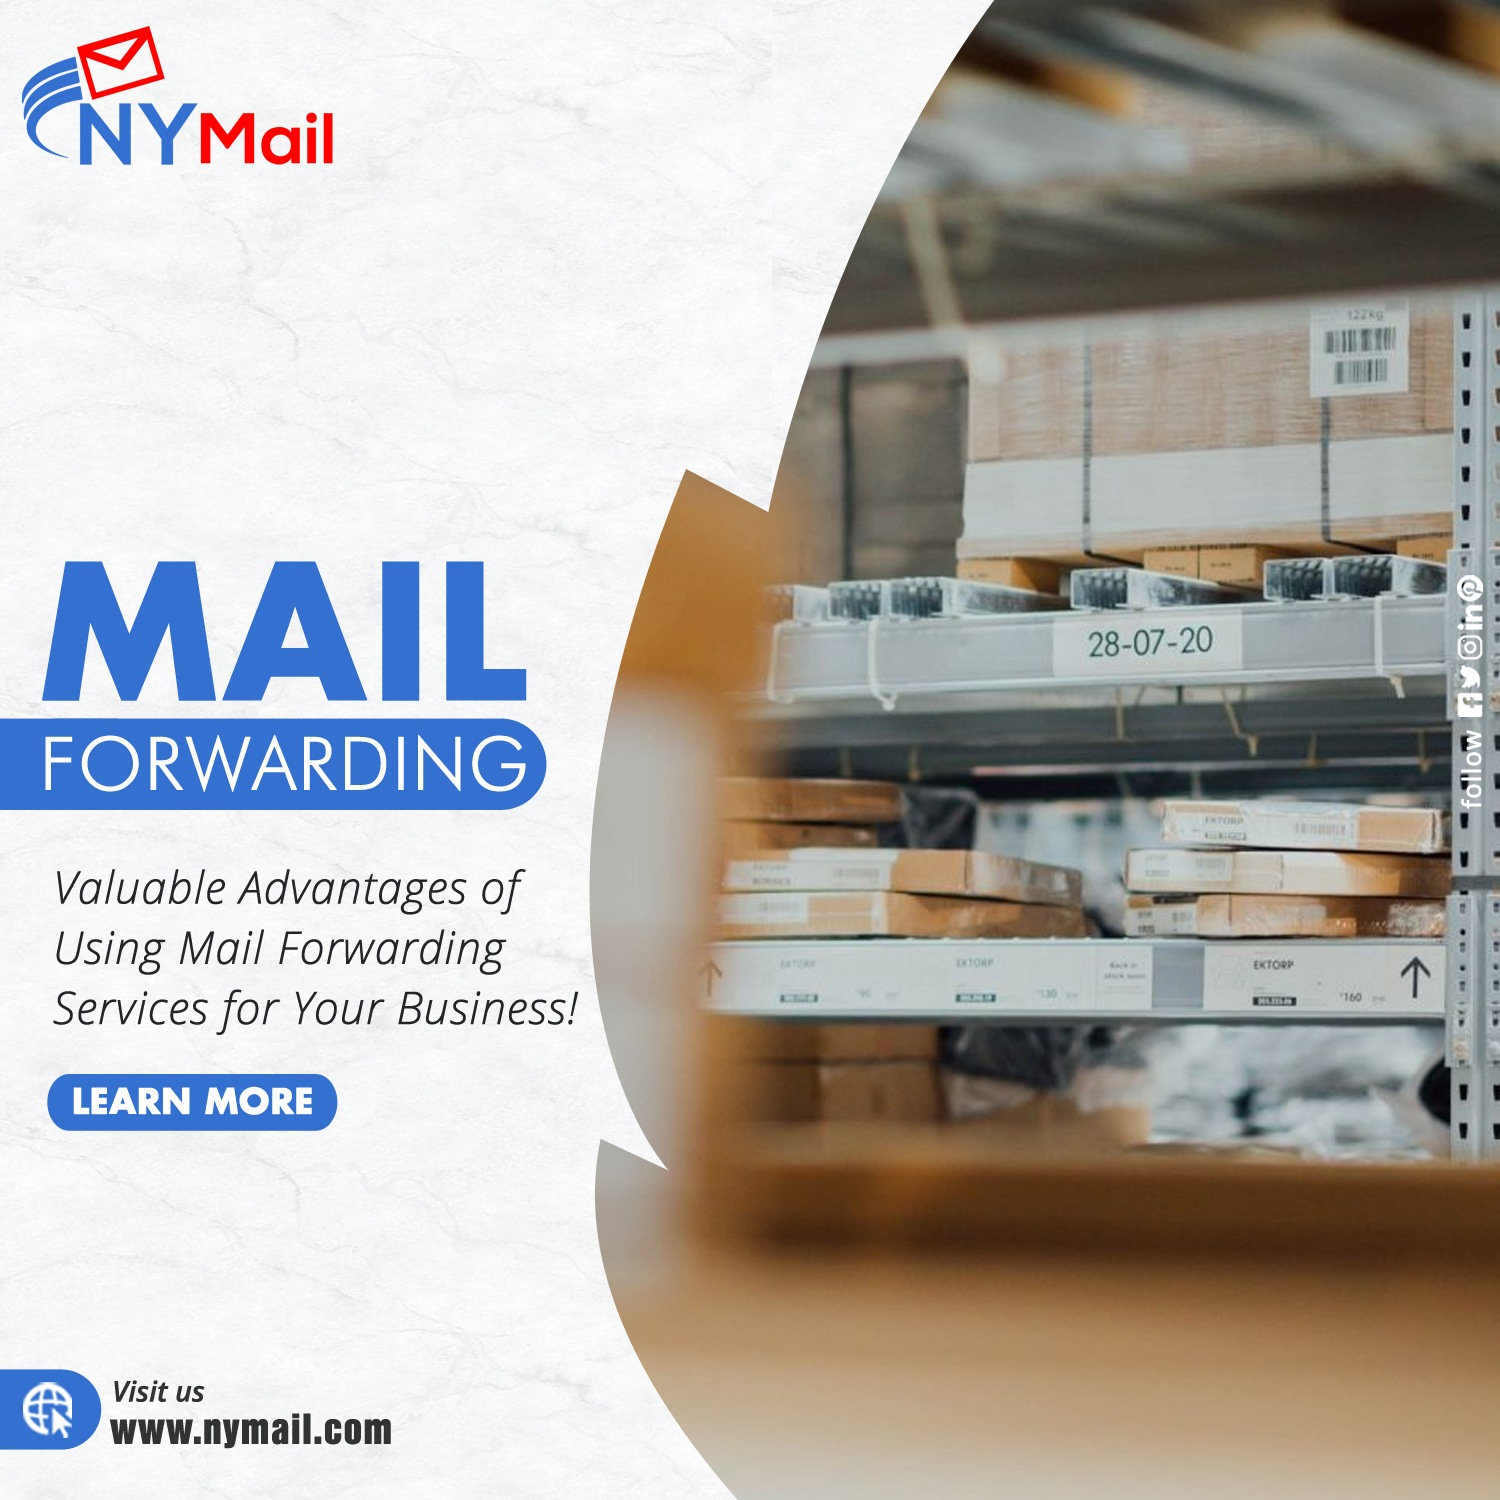 Mail Forwarding Services for Your Business